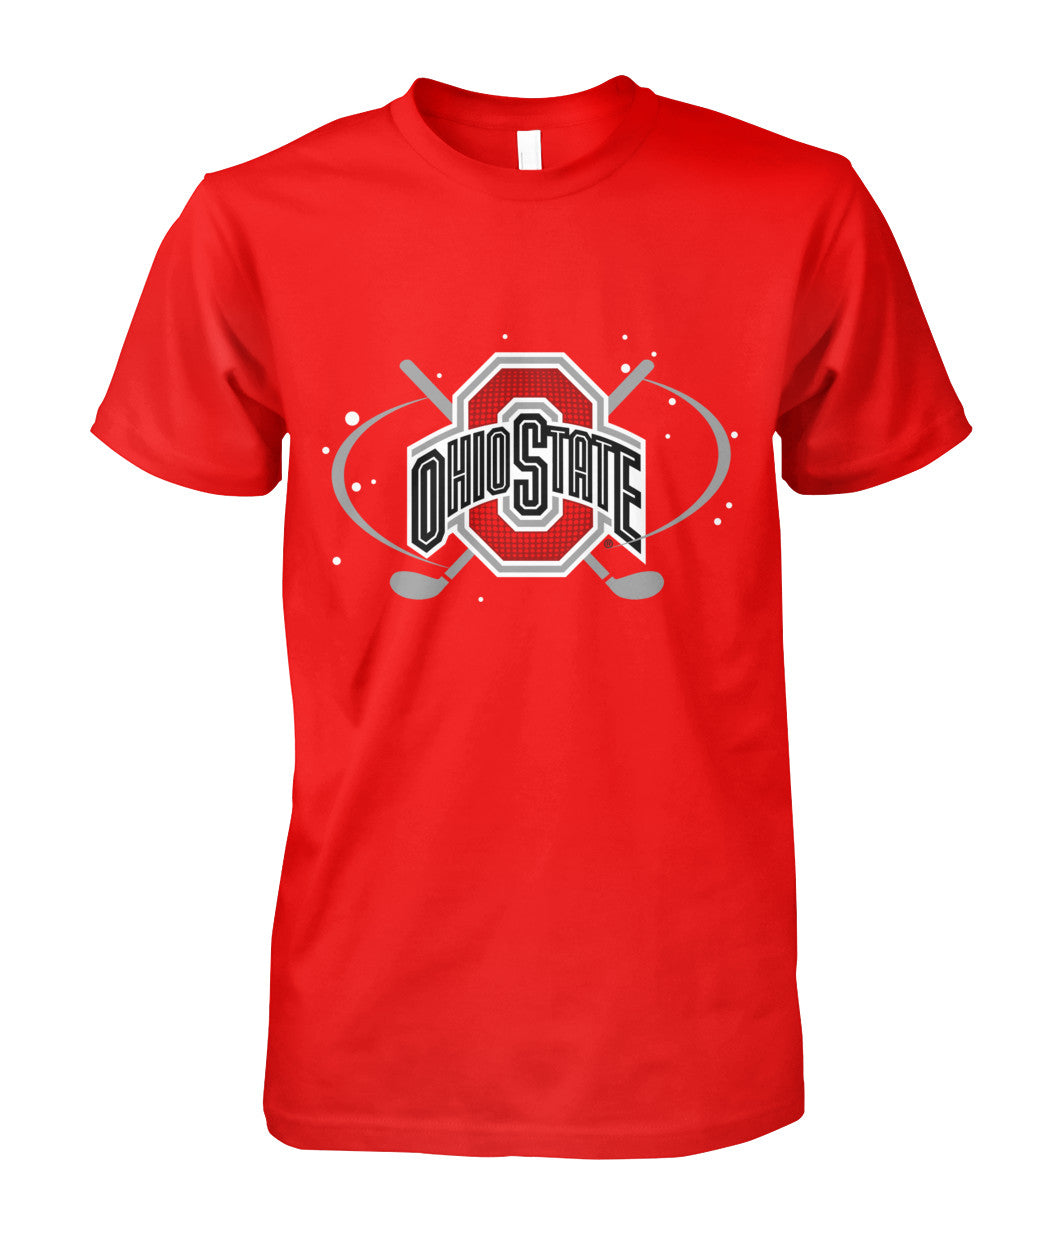 Ohio state funny golf shirt Unisex Cotton Tee-Short Sleeves - AllGolfUSA.COM